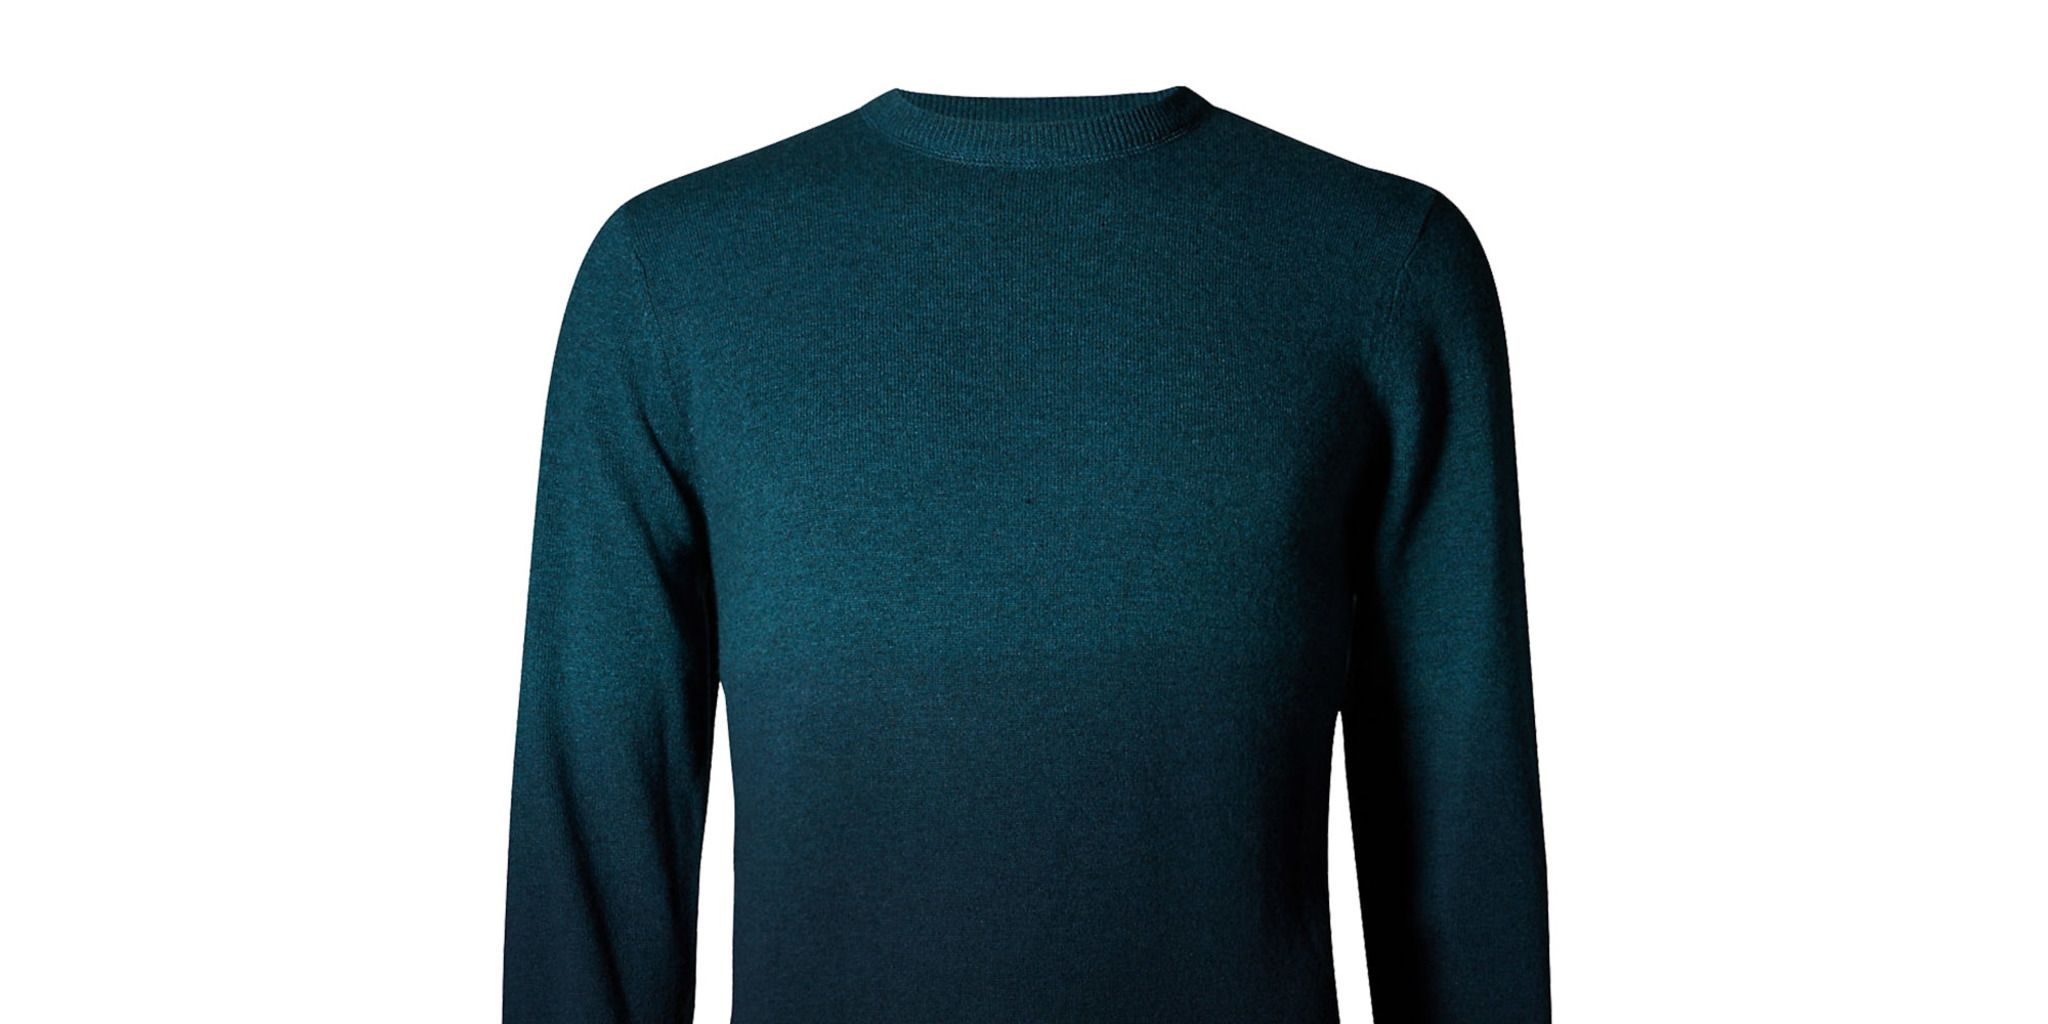 KNITWEAR - Jumpers L'Edition Shop Your Own Excellent Cheap Price Inexpensive Cheap Online Cheap Sale Lowest Price Mefdmz